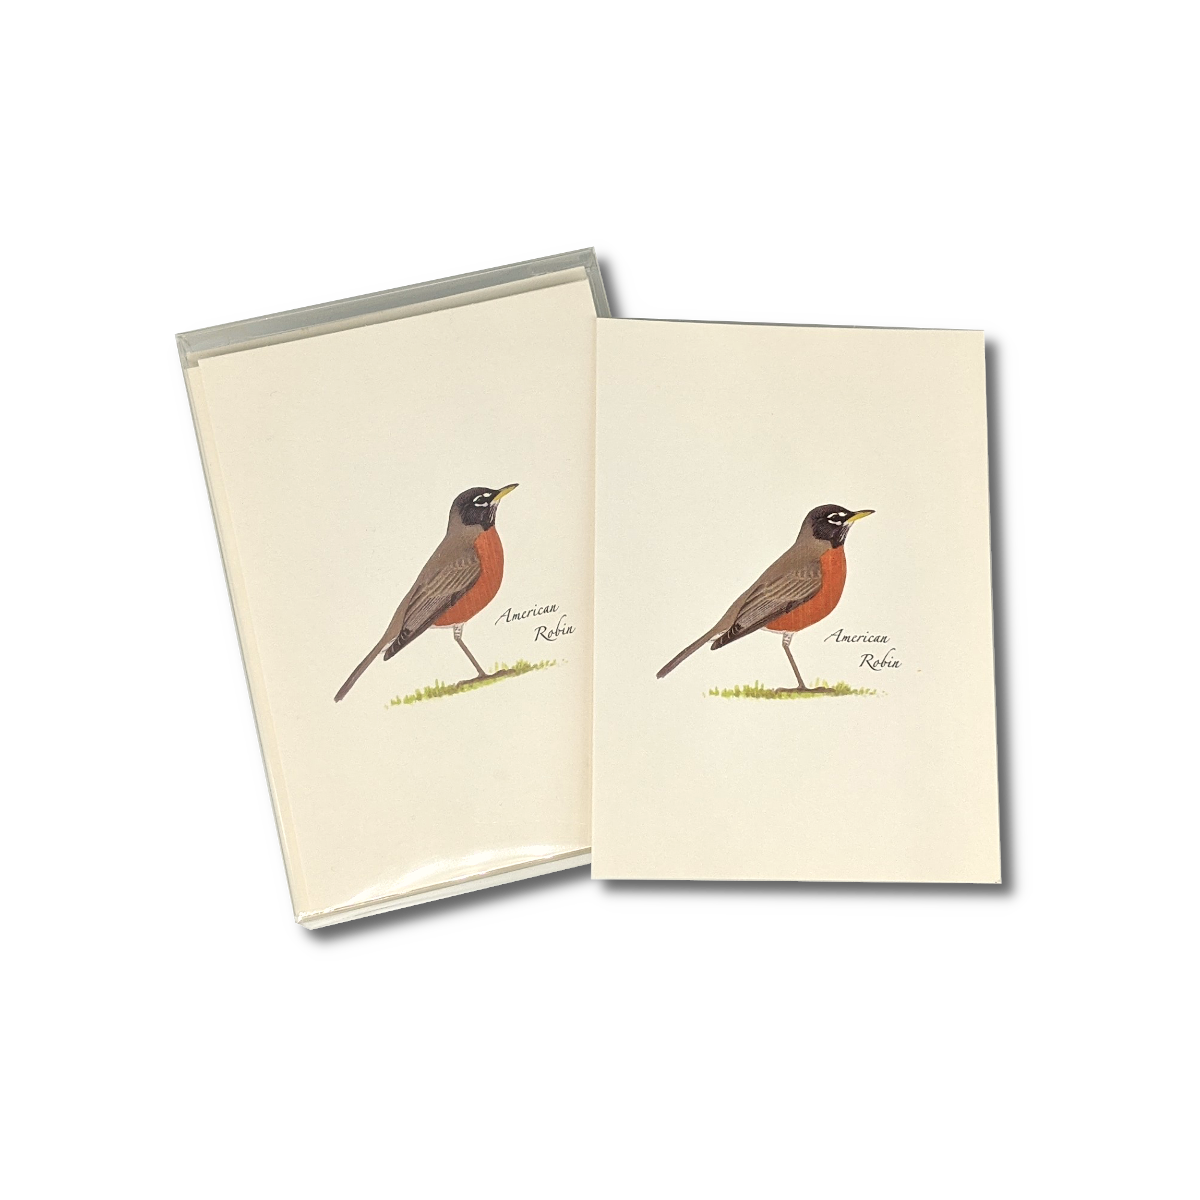 A box of American Robin notecards